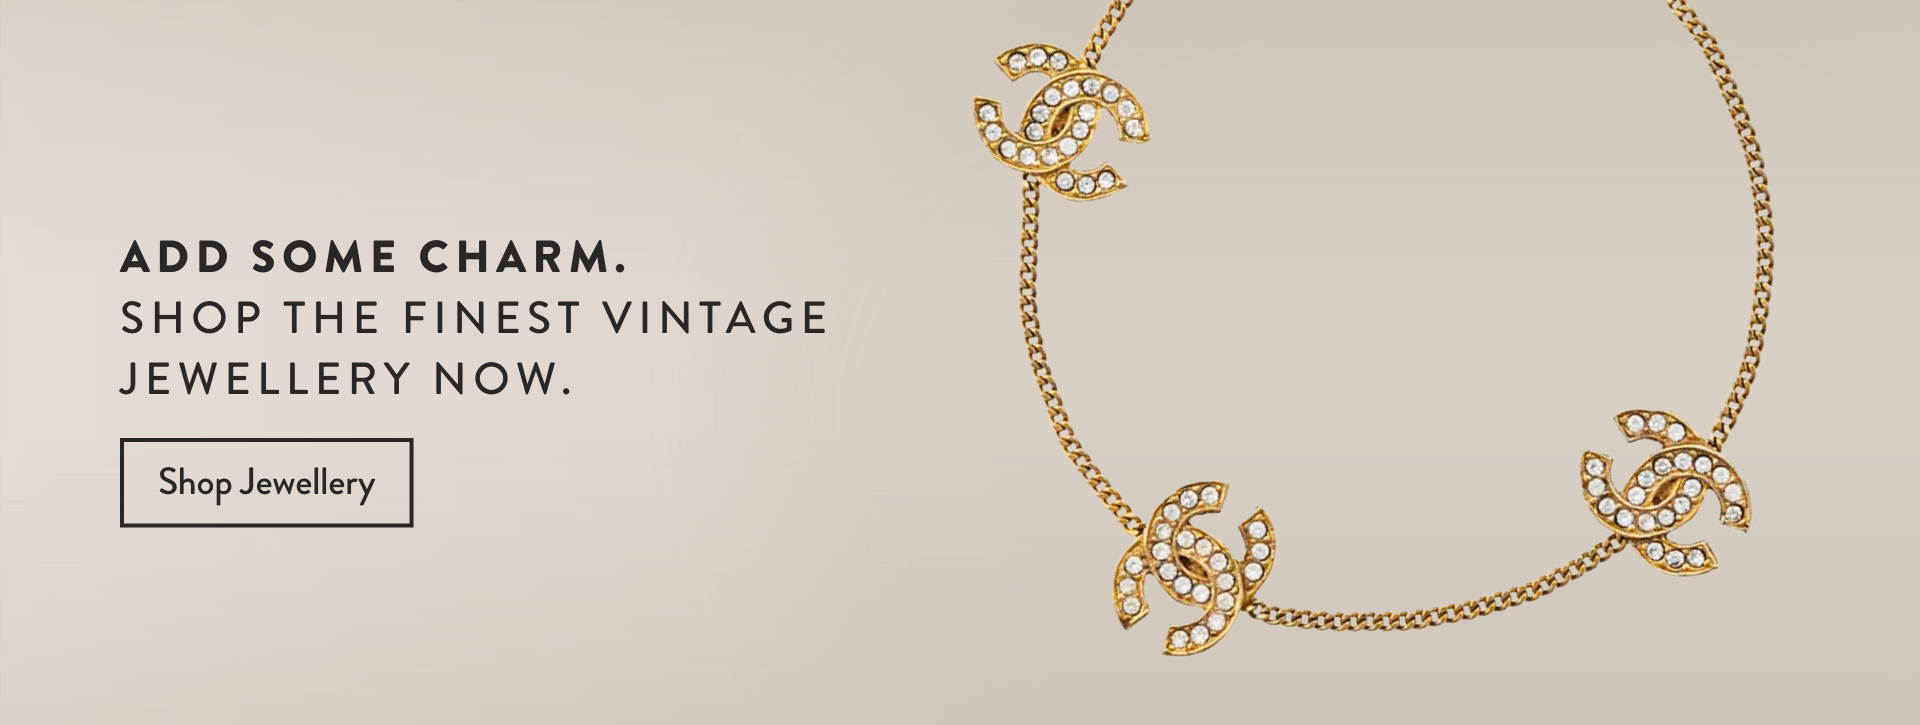 Open for Vintage Jewellery Collection